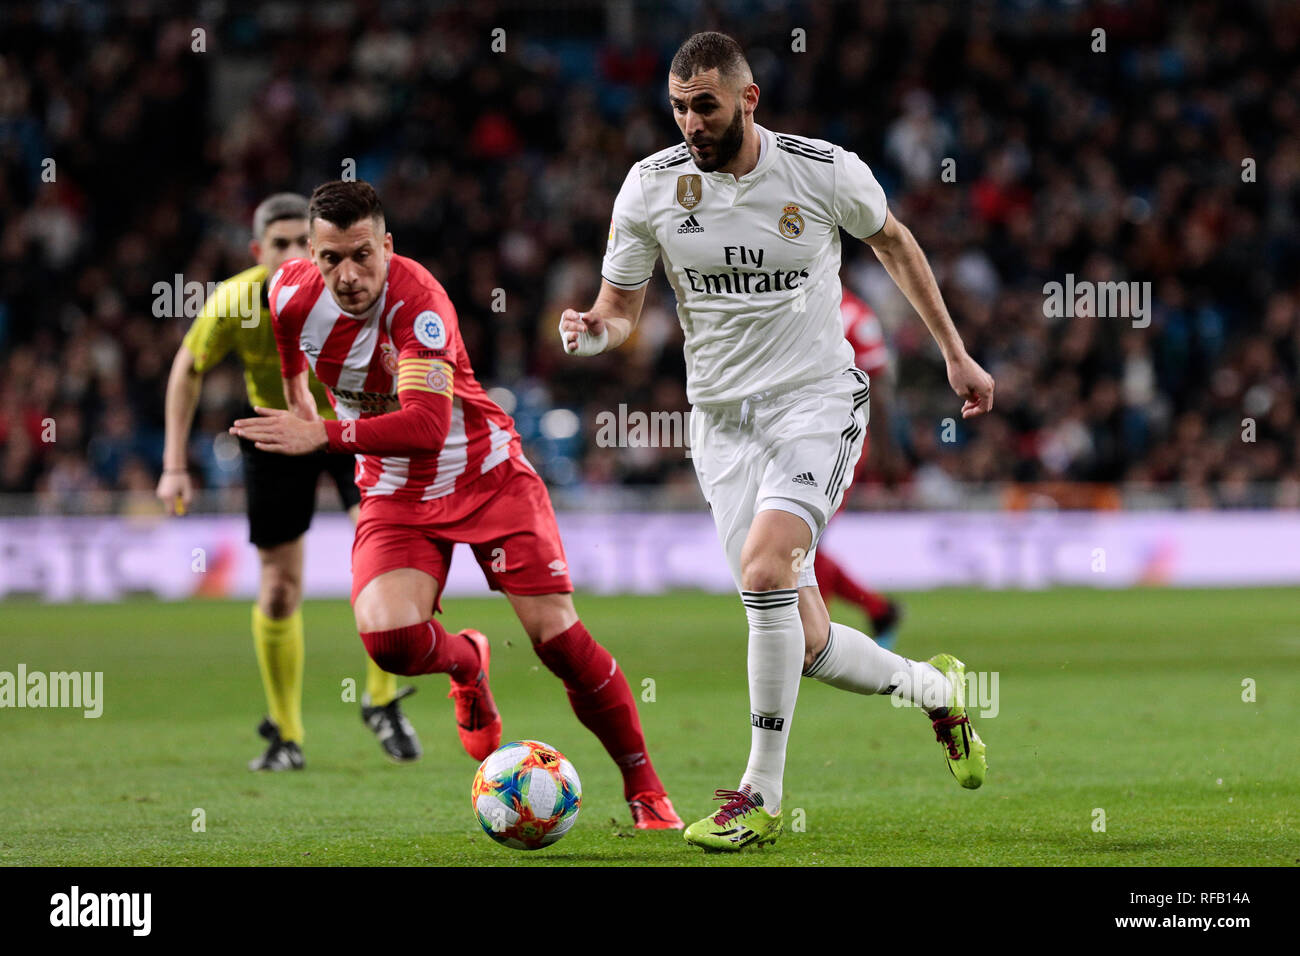 Real Madrid's Karim Benzema during Copa del Rey match between Real Madrid and Girona FC at Santiago Bernabeu. (Final score: Real Madrid 4 - Girona FC 2) - Stock Image